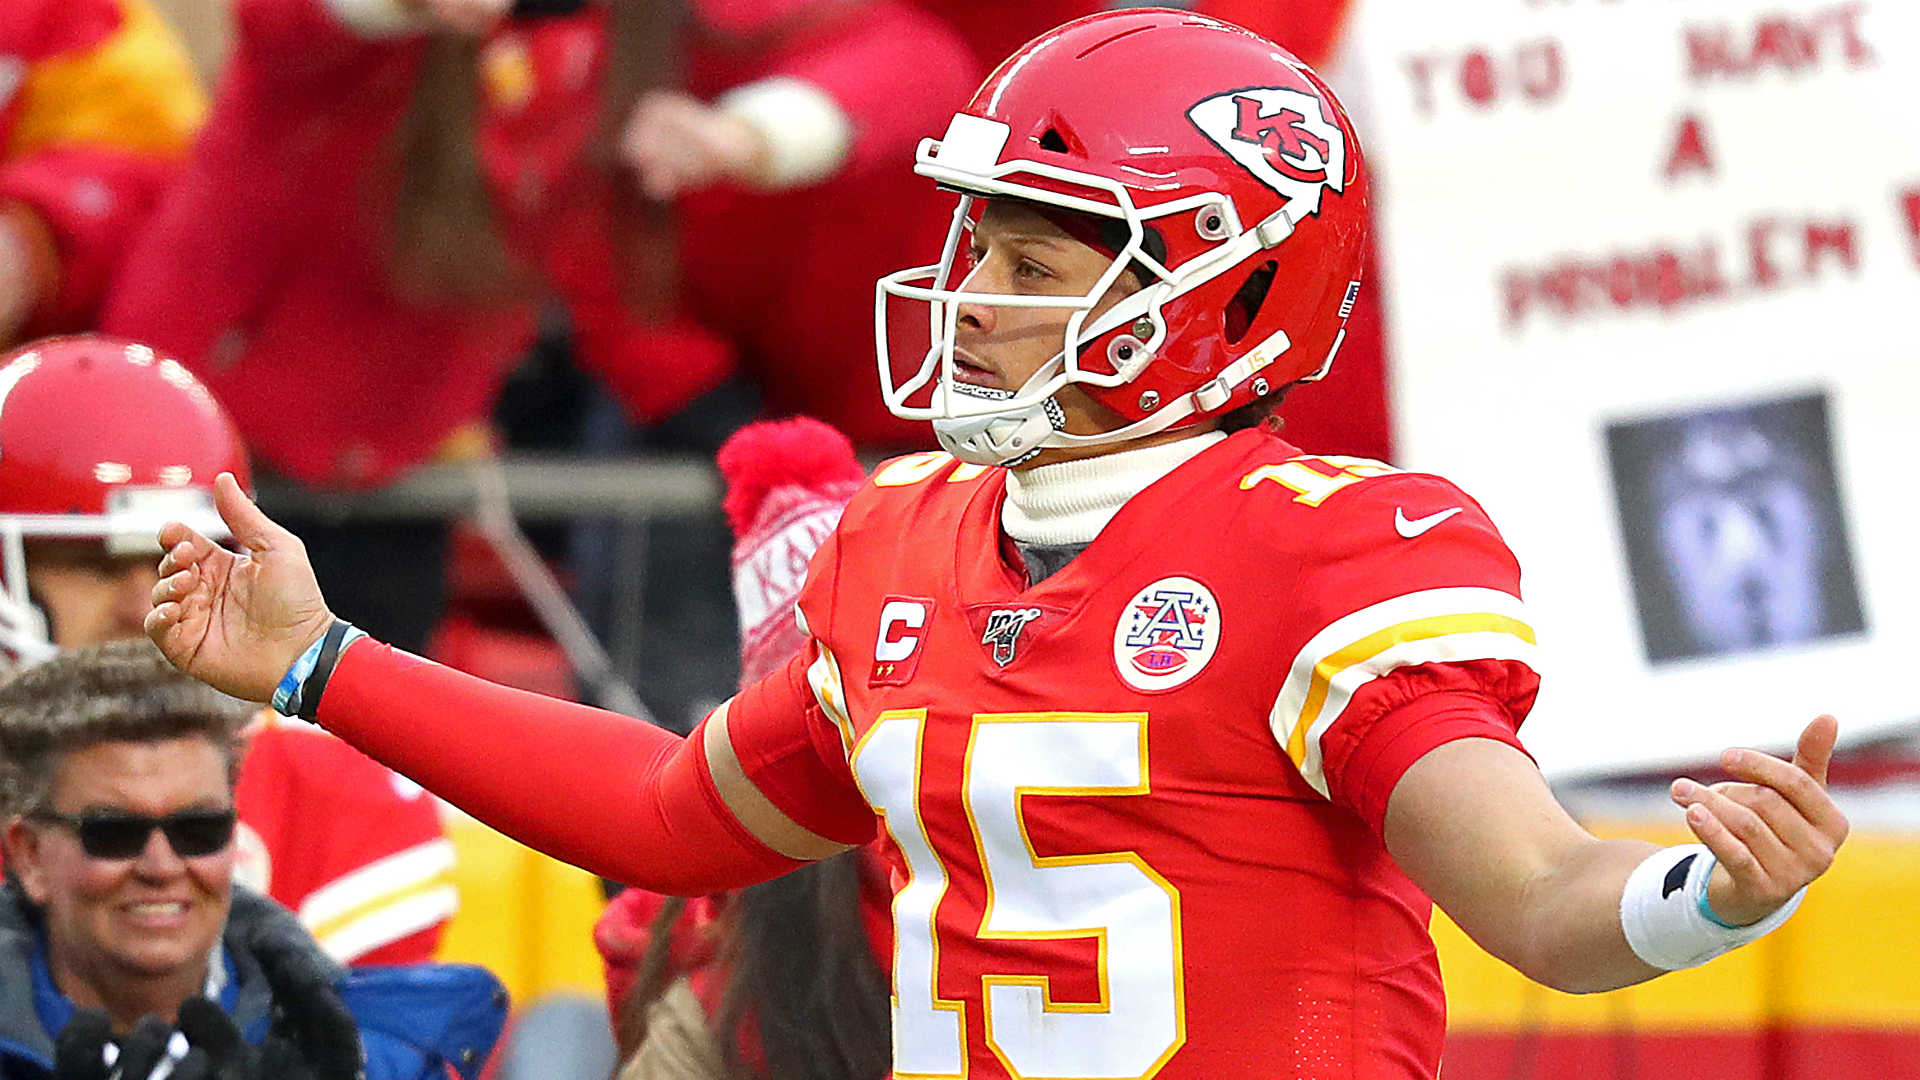 Patrick Mahomes takes notes after coming in fourth again in NFL Top 100